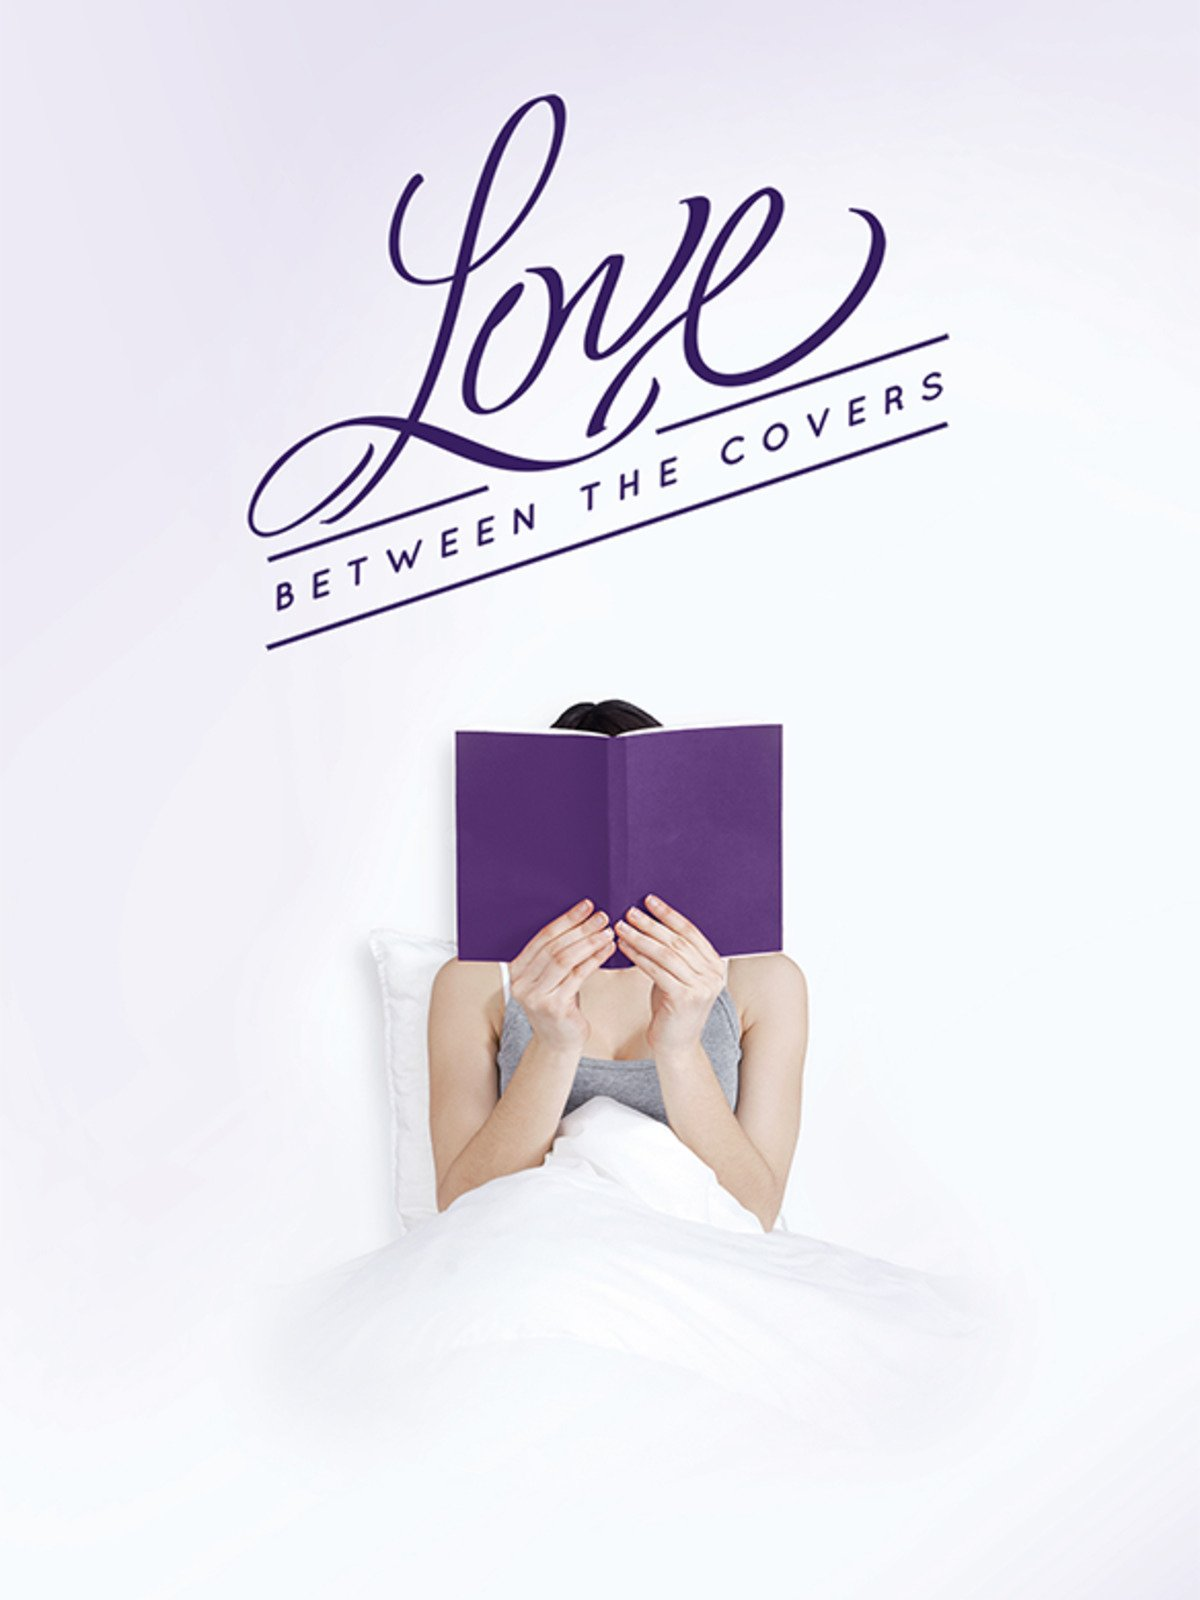 Love Between the Covers